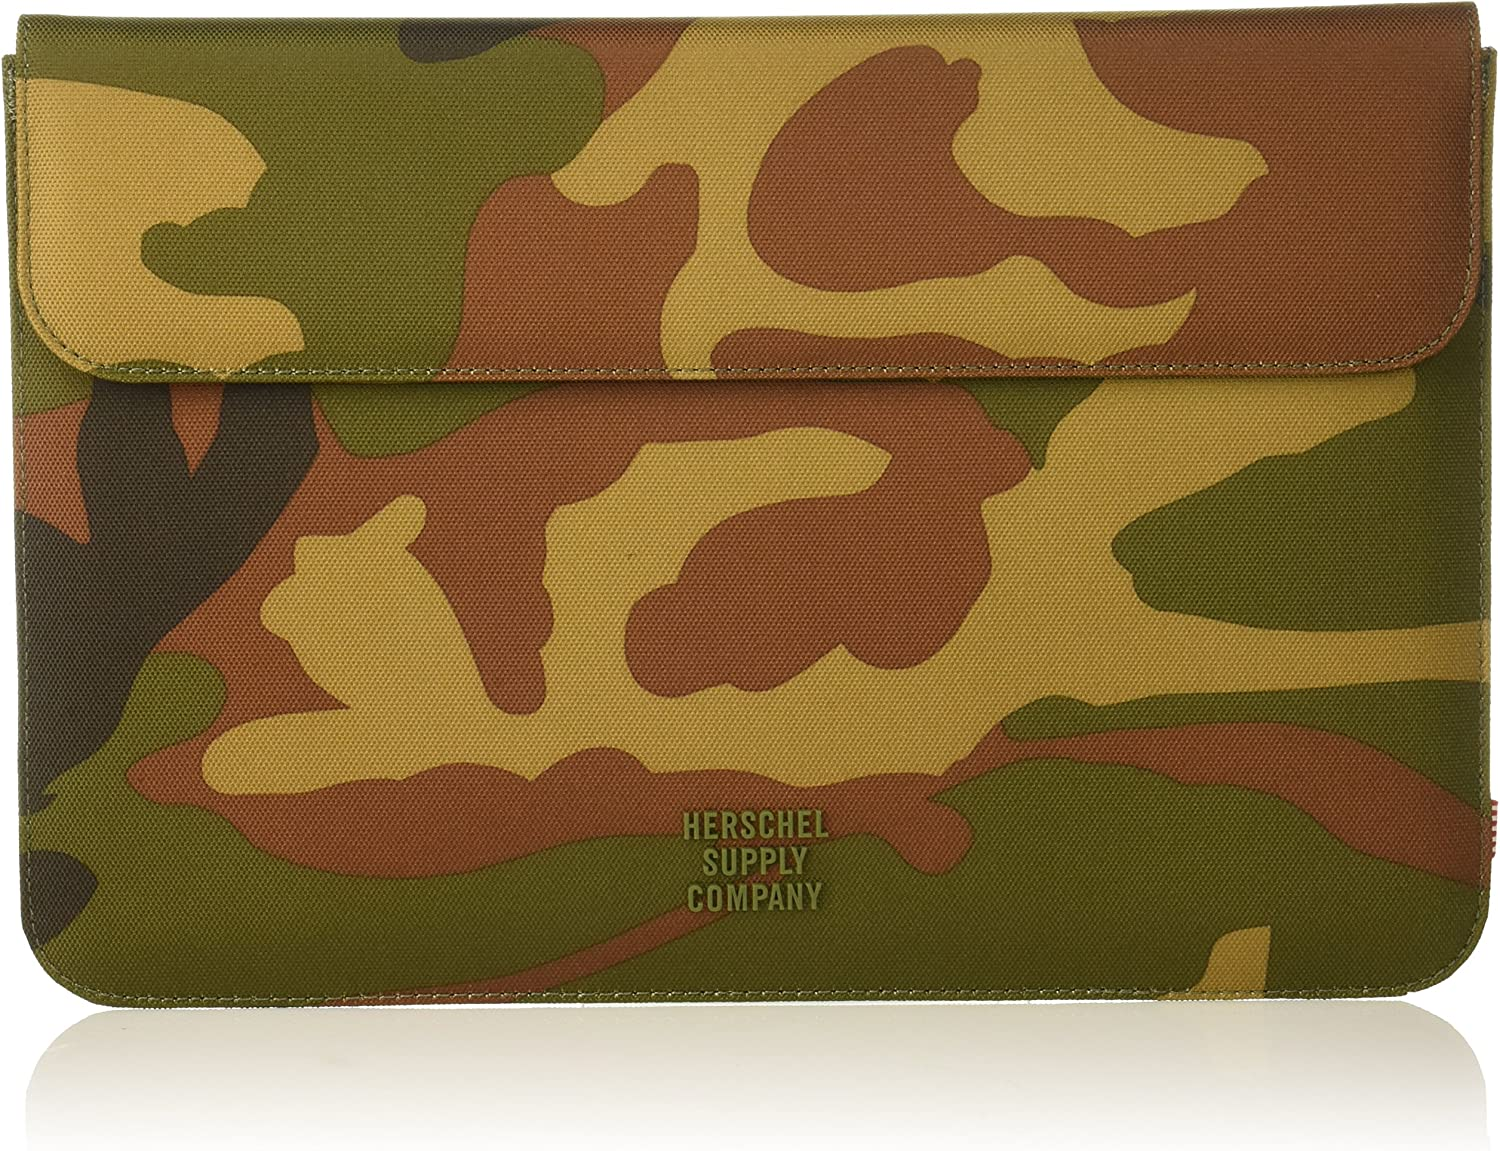 Herschel Spokane Sleeve for MacBook/iPad, Woodland Camo, 12-Inch